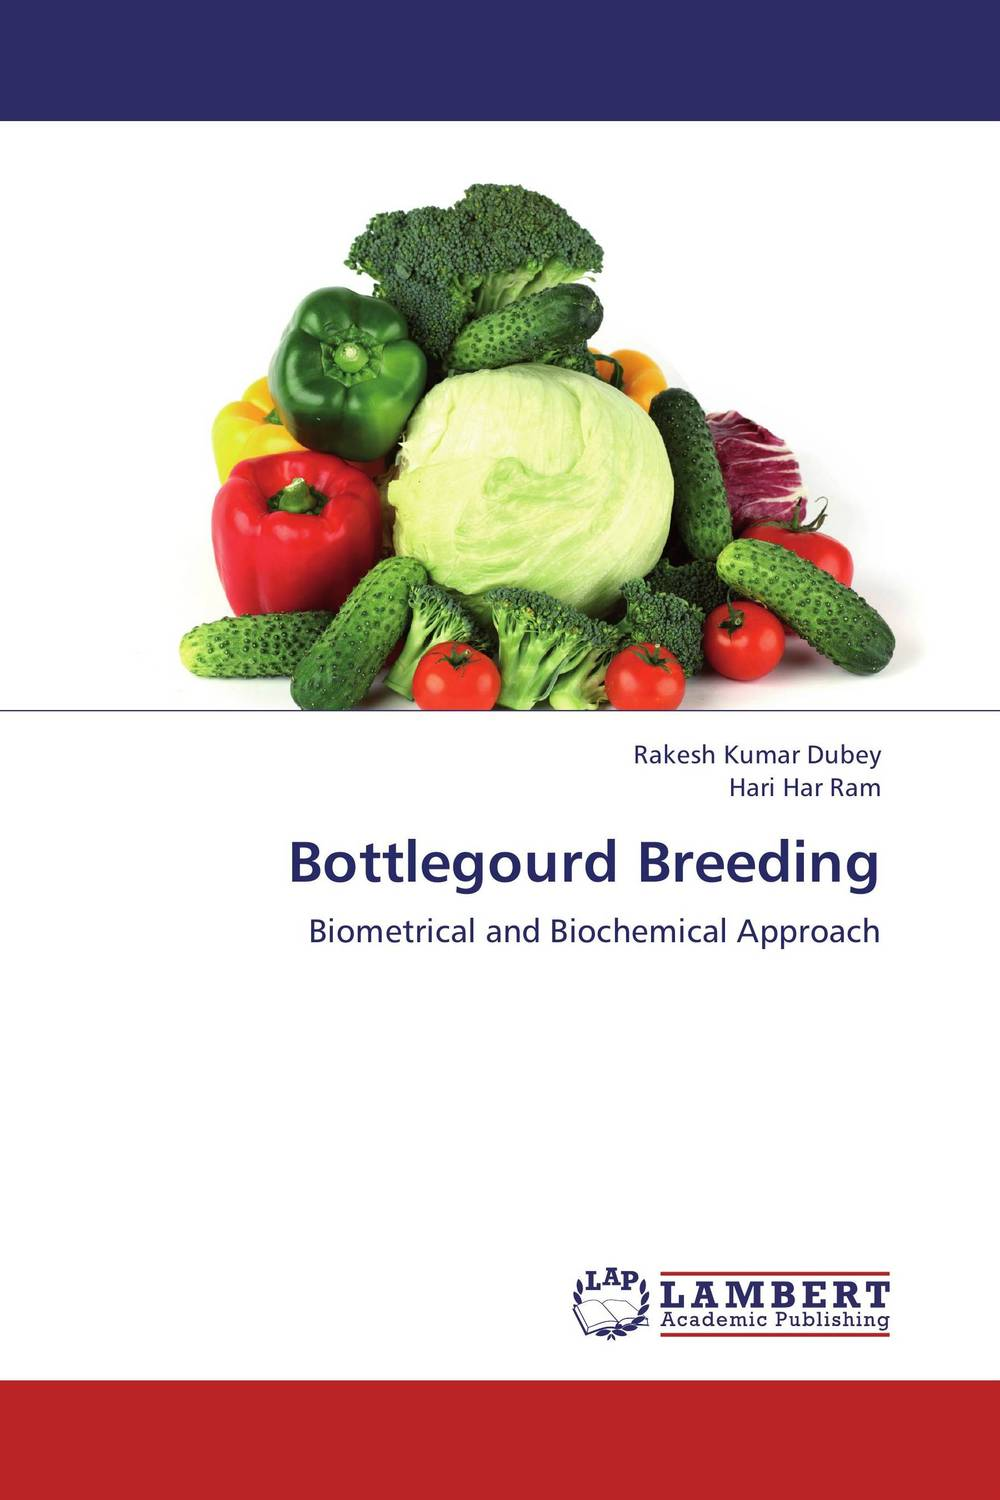 Bottlegourd Breeding bottlegourd breeding